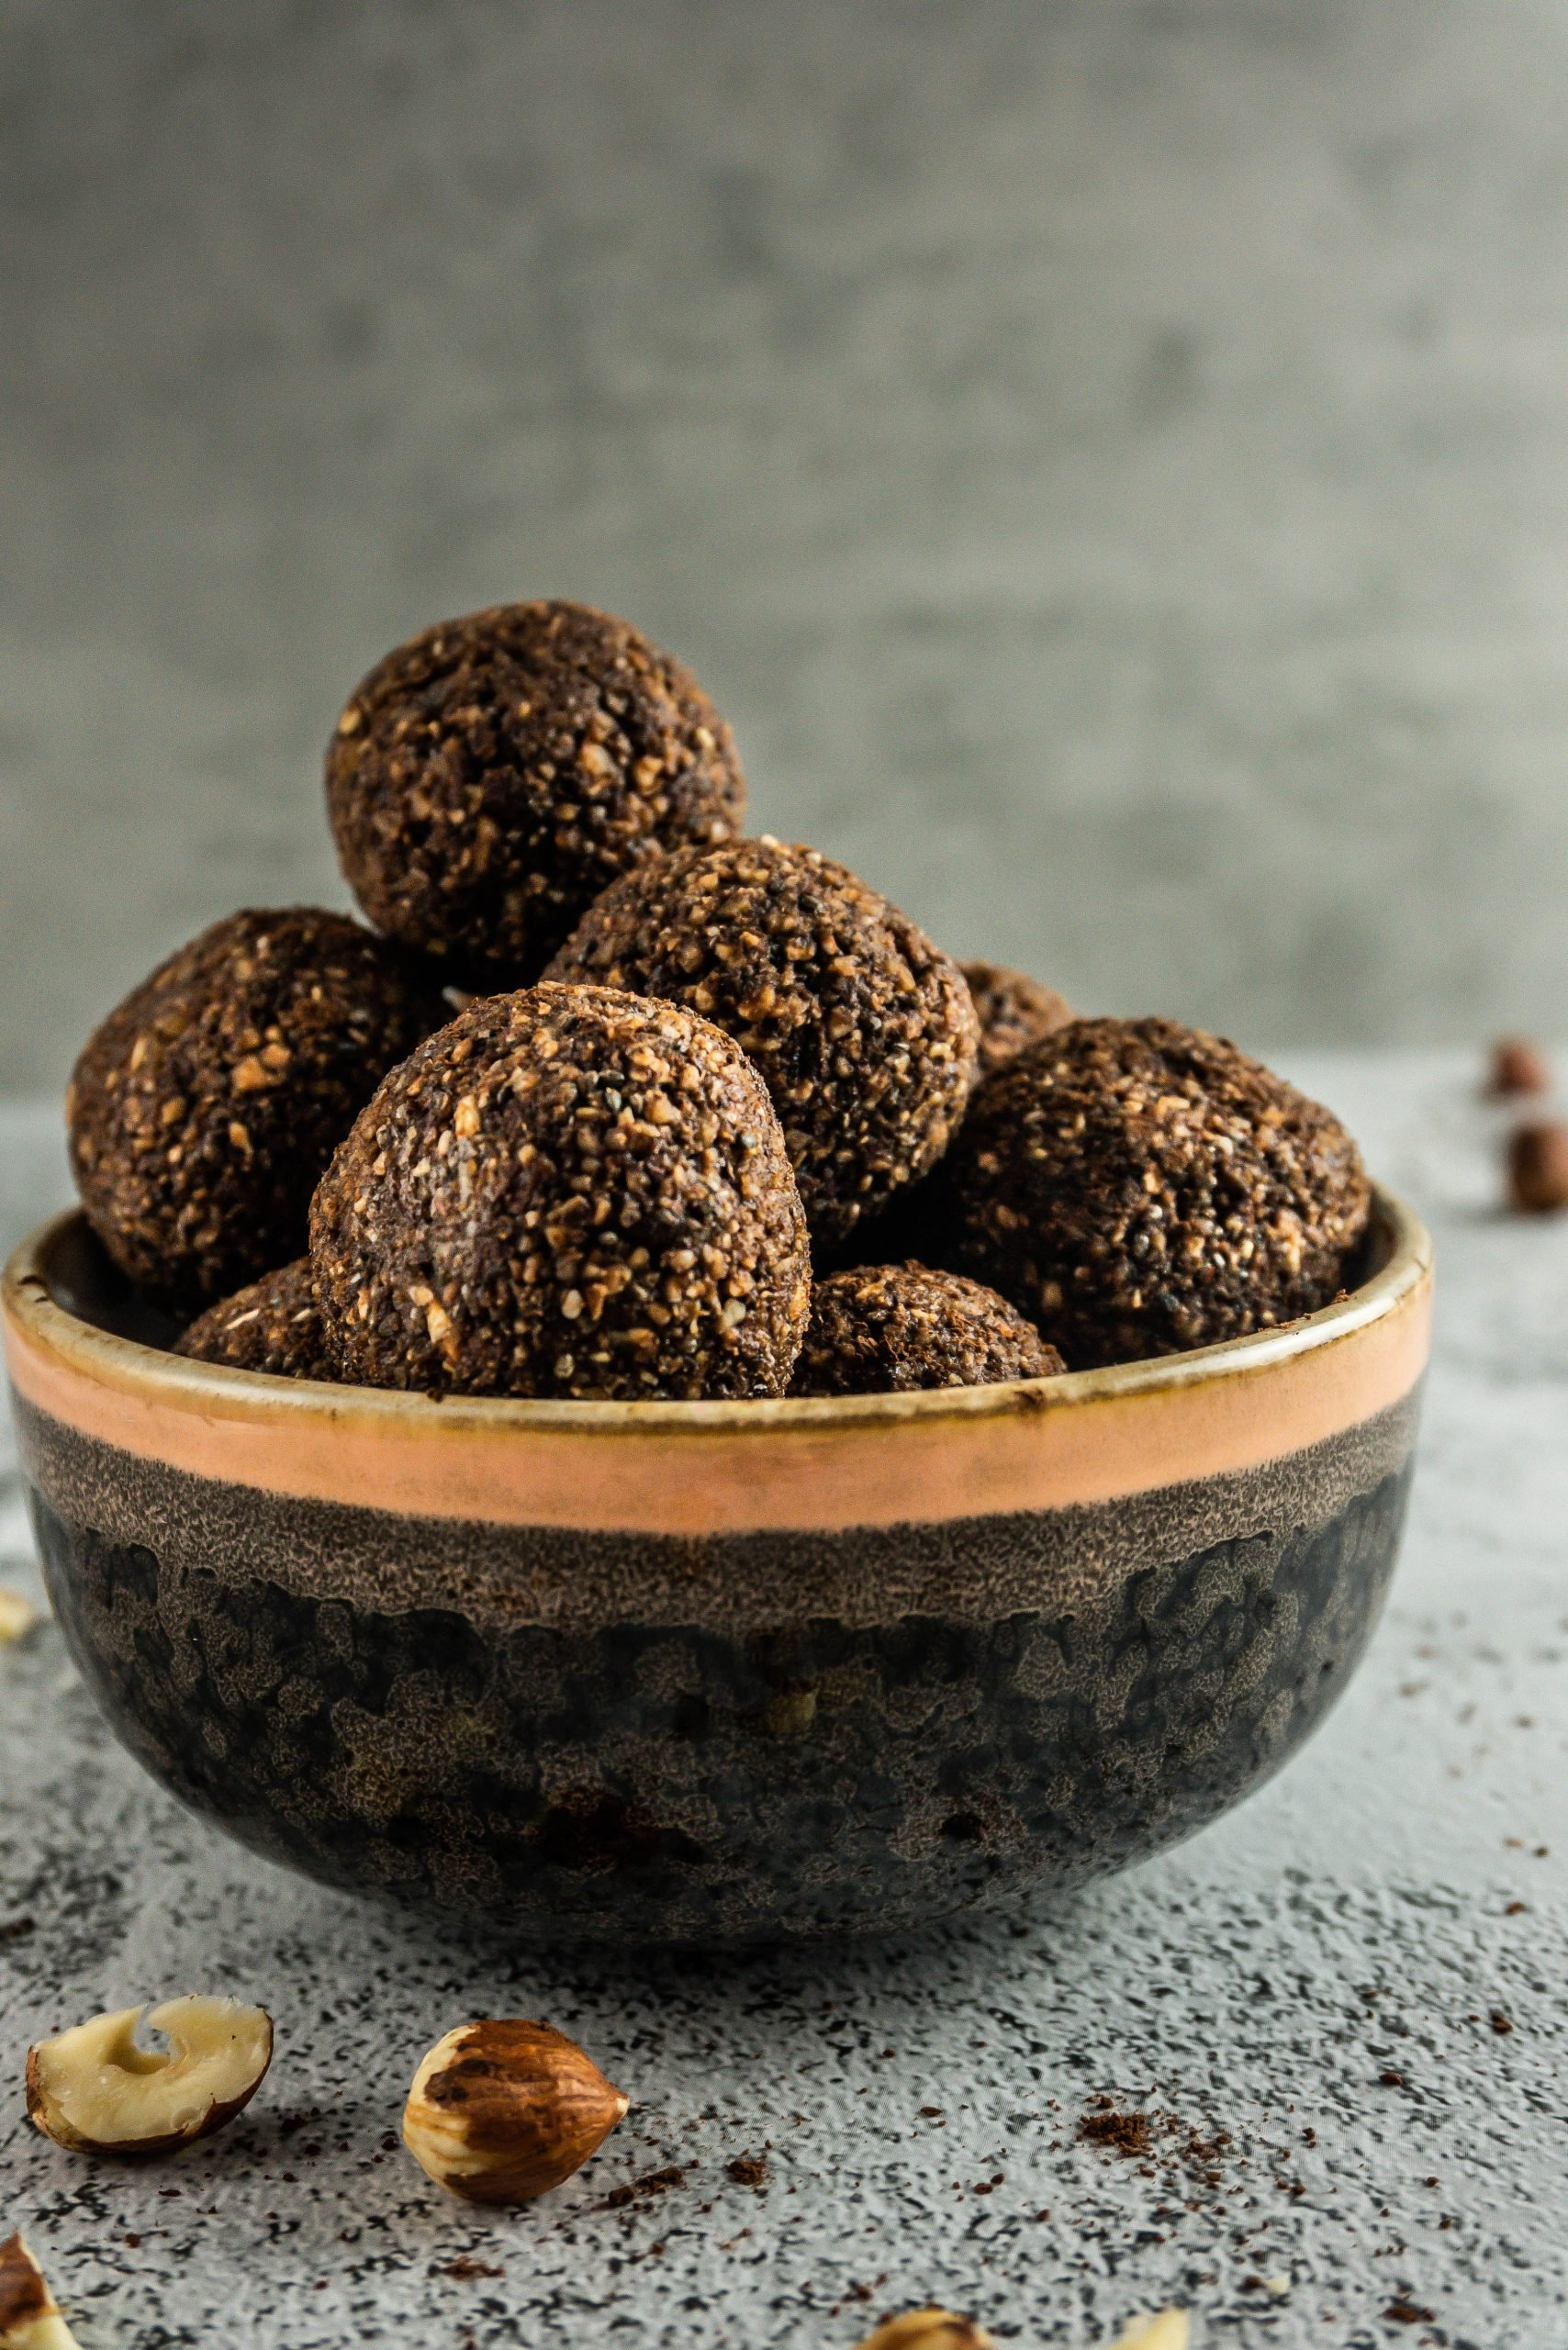 Chocolate Hazelnut Energy Balls in a bowl with chopped hazelnuts scattered around. Photographed from a side angle